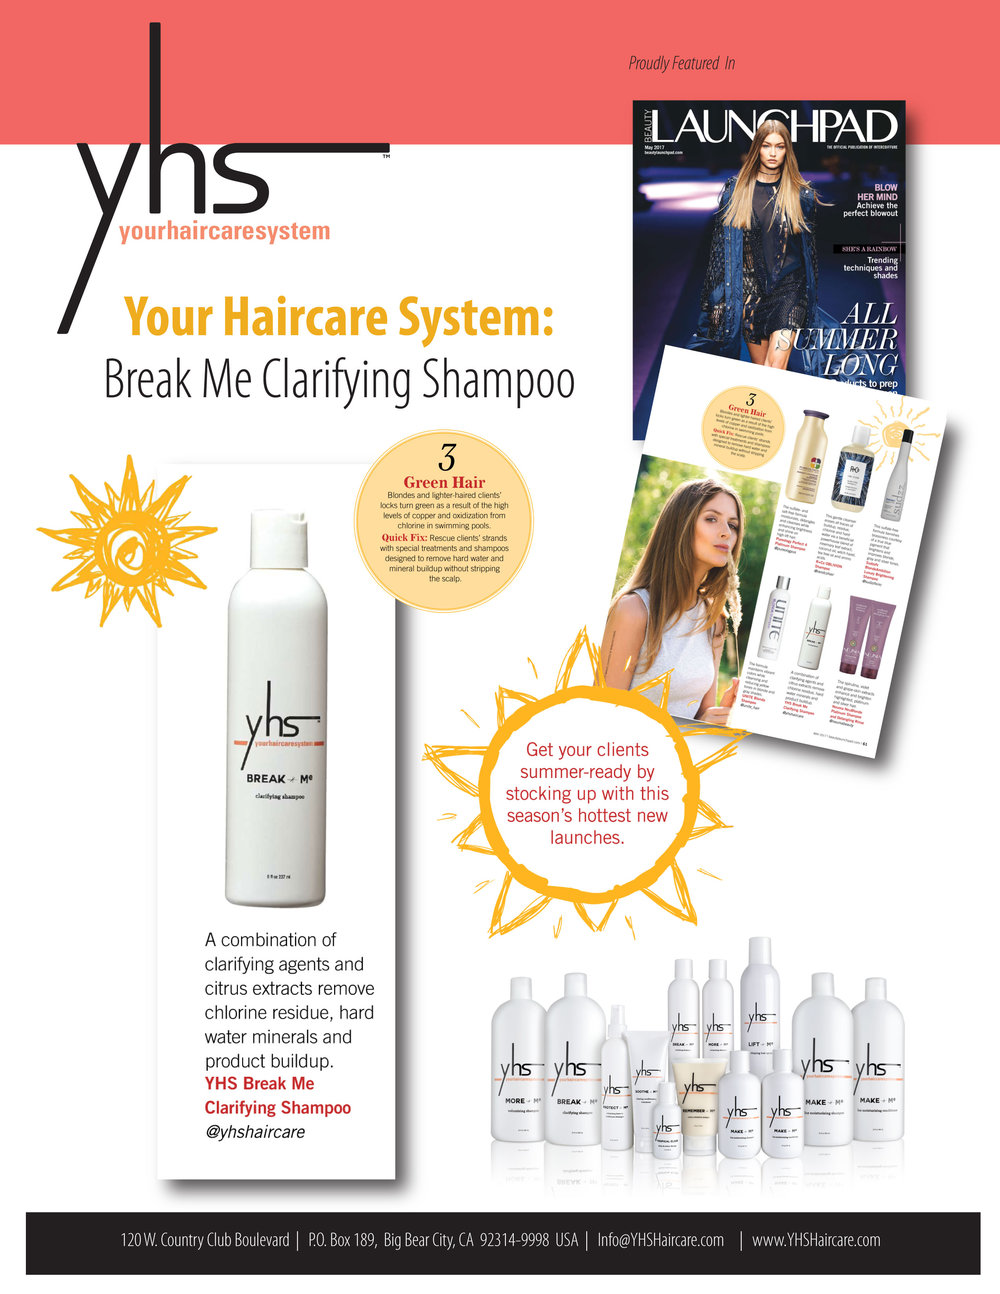 YHS--PRR-Your-Haircare-System--May-2017-Launchpad-Break-Me-Shampoo-1-Apr28,17.jpg